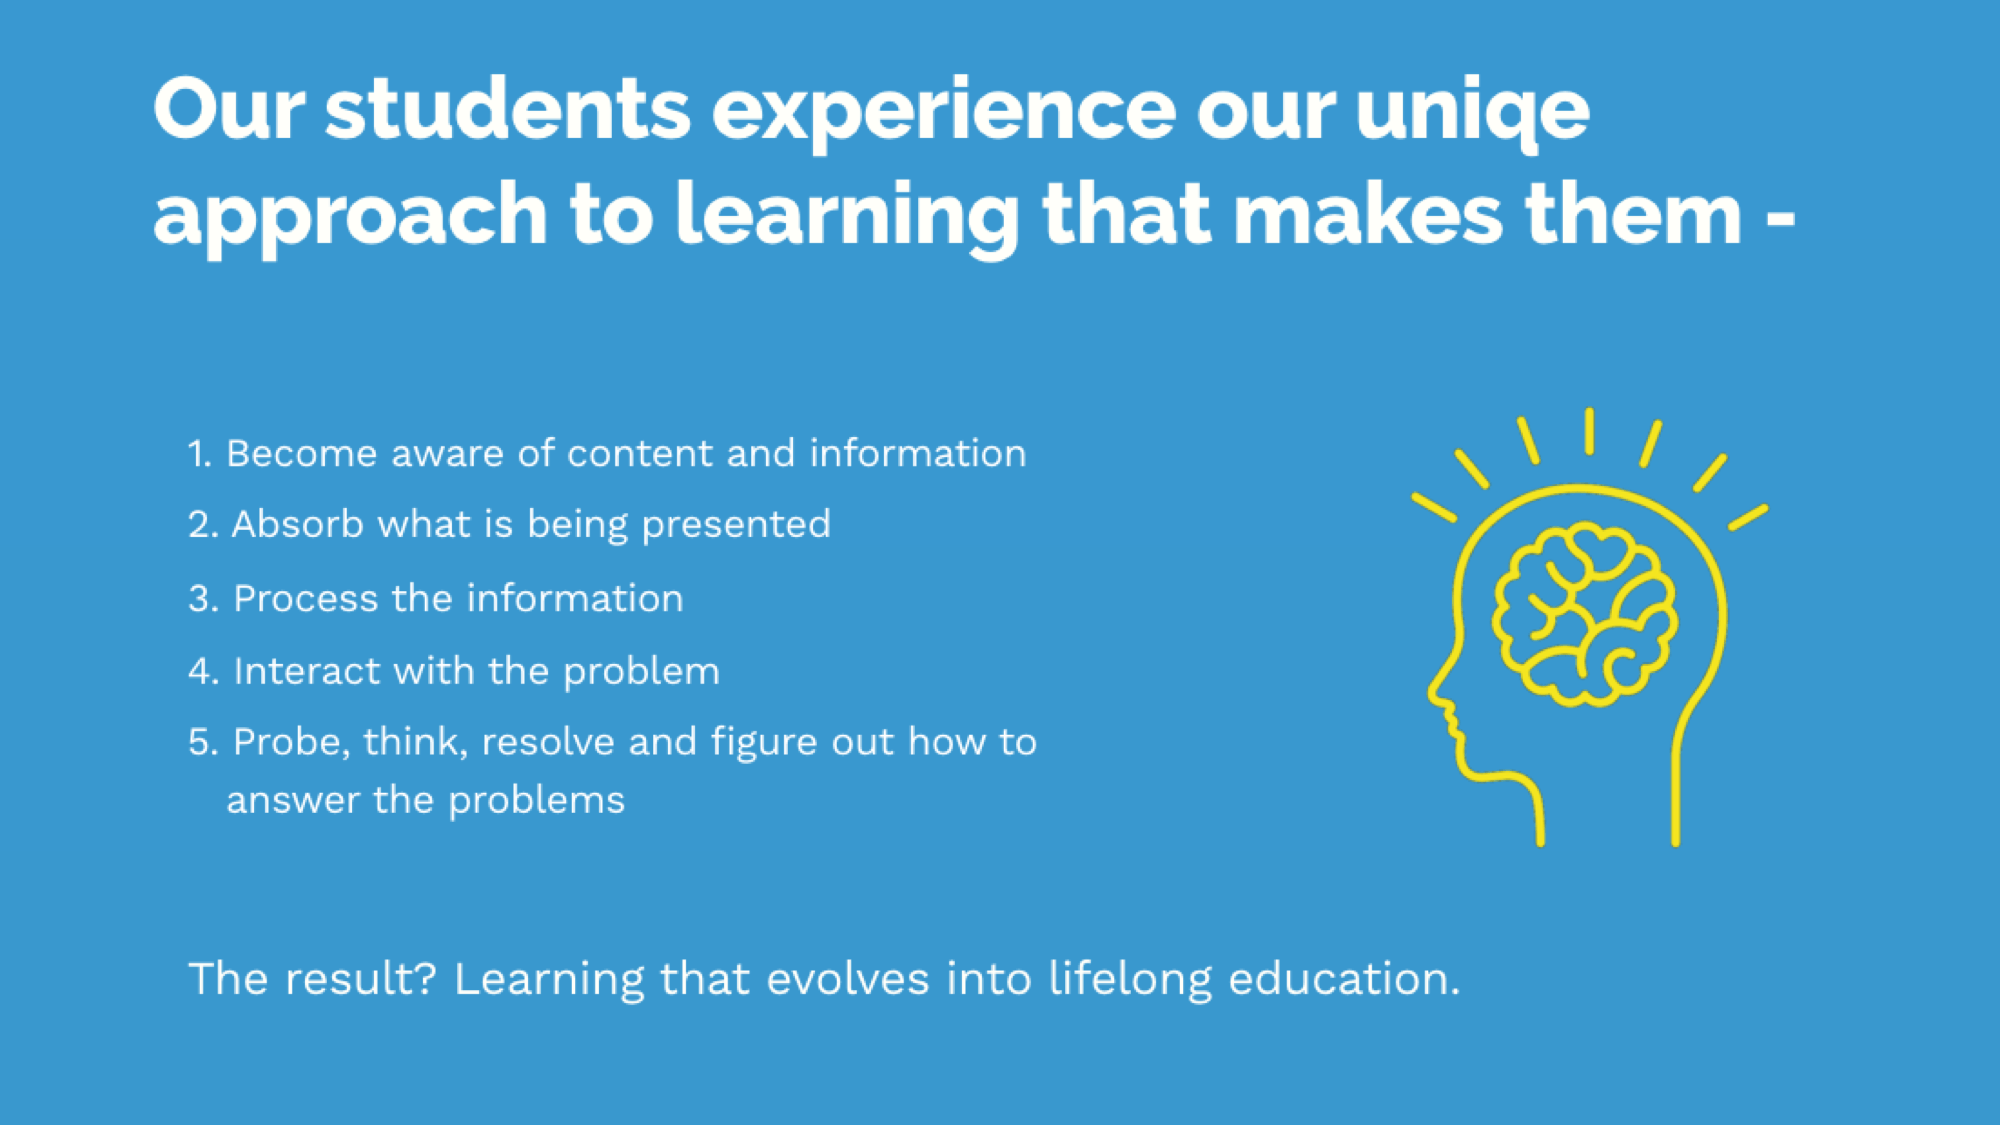 Unique approach to learning